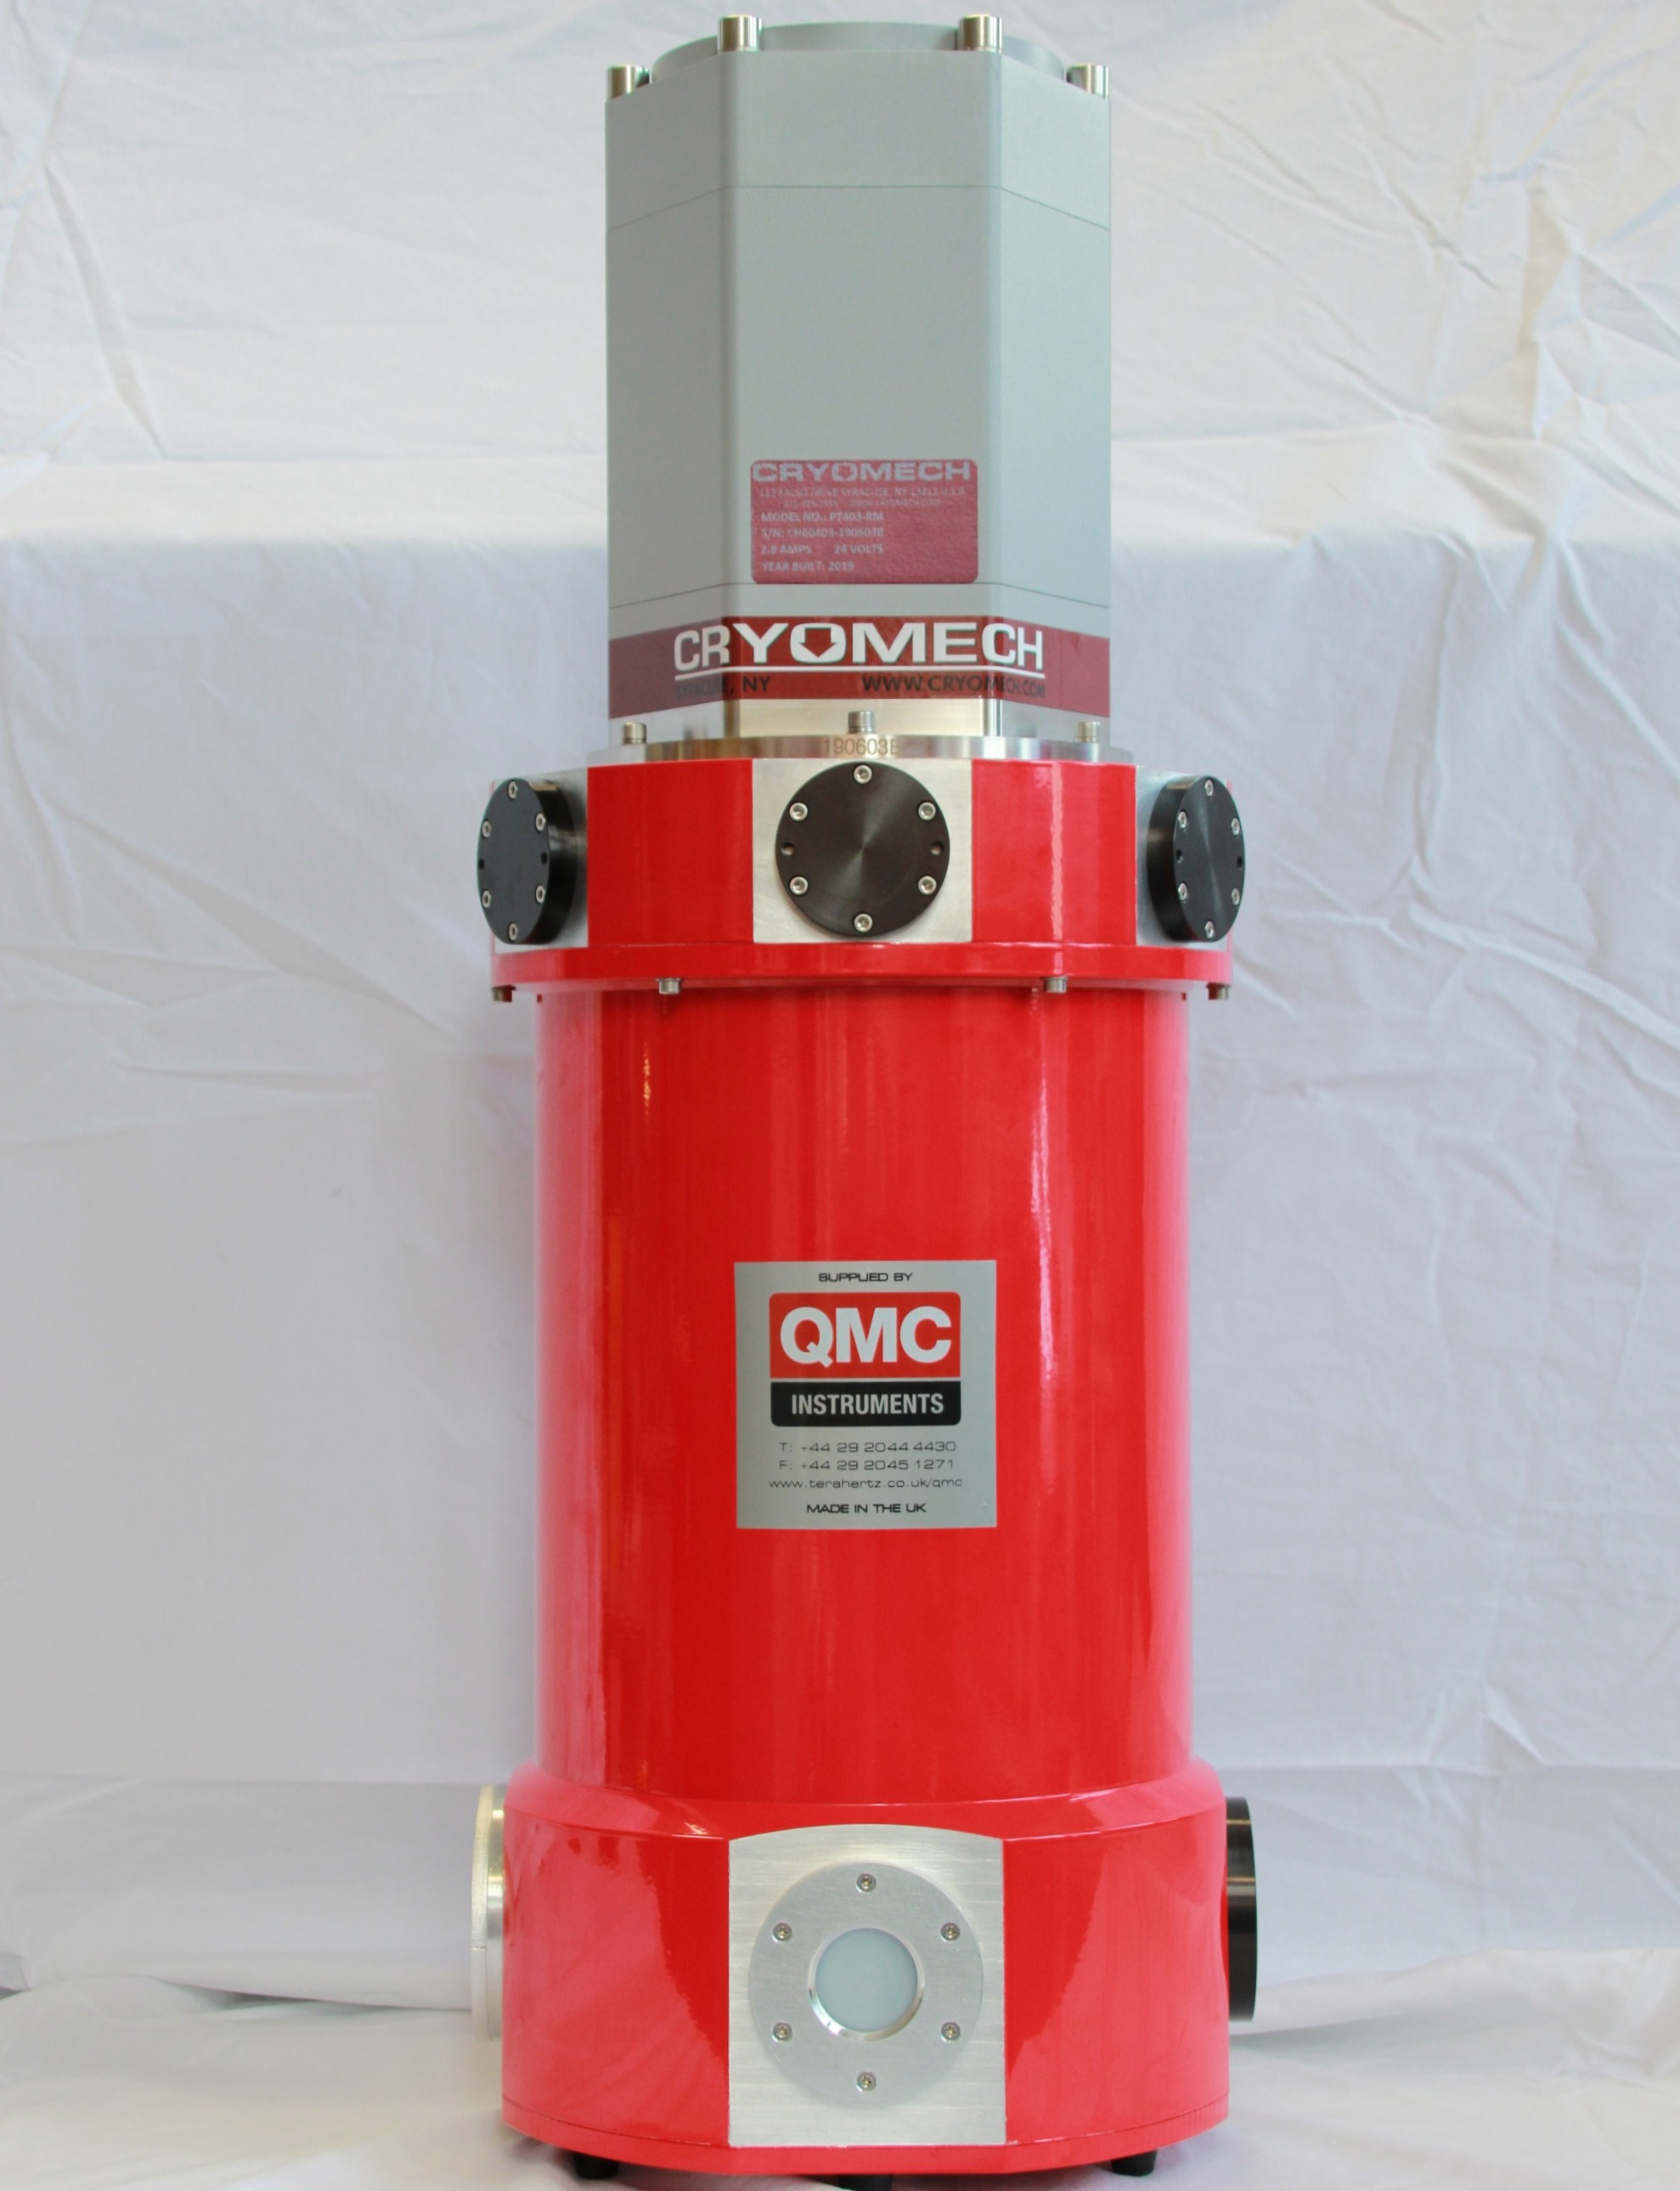 Dry Cryogenic Detector Systems